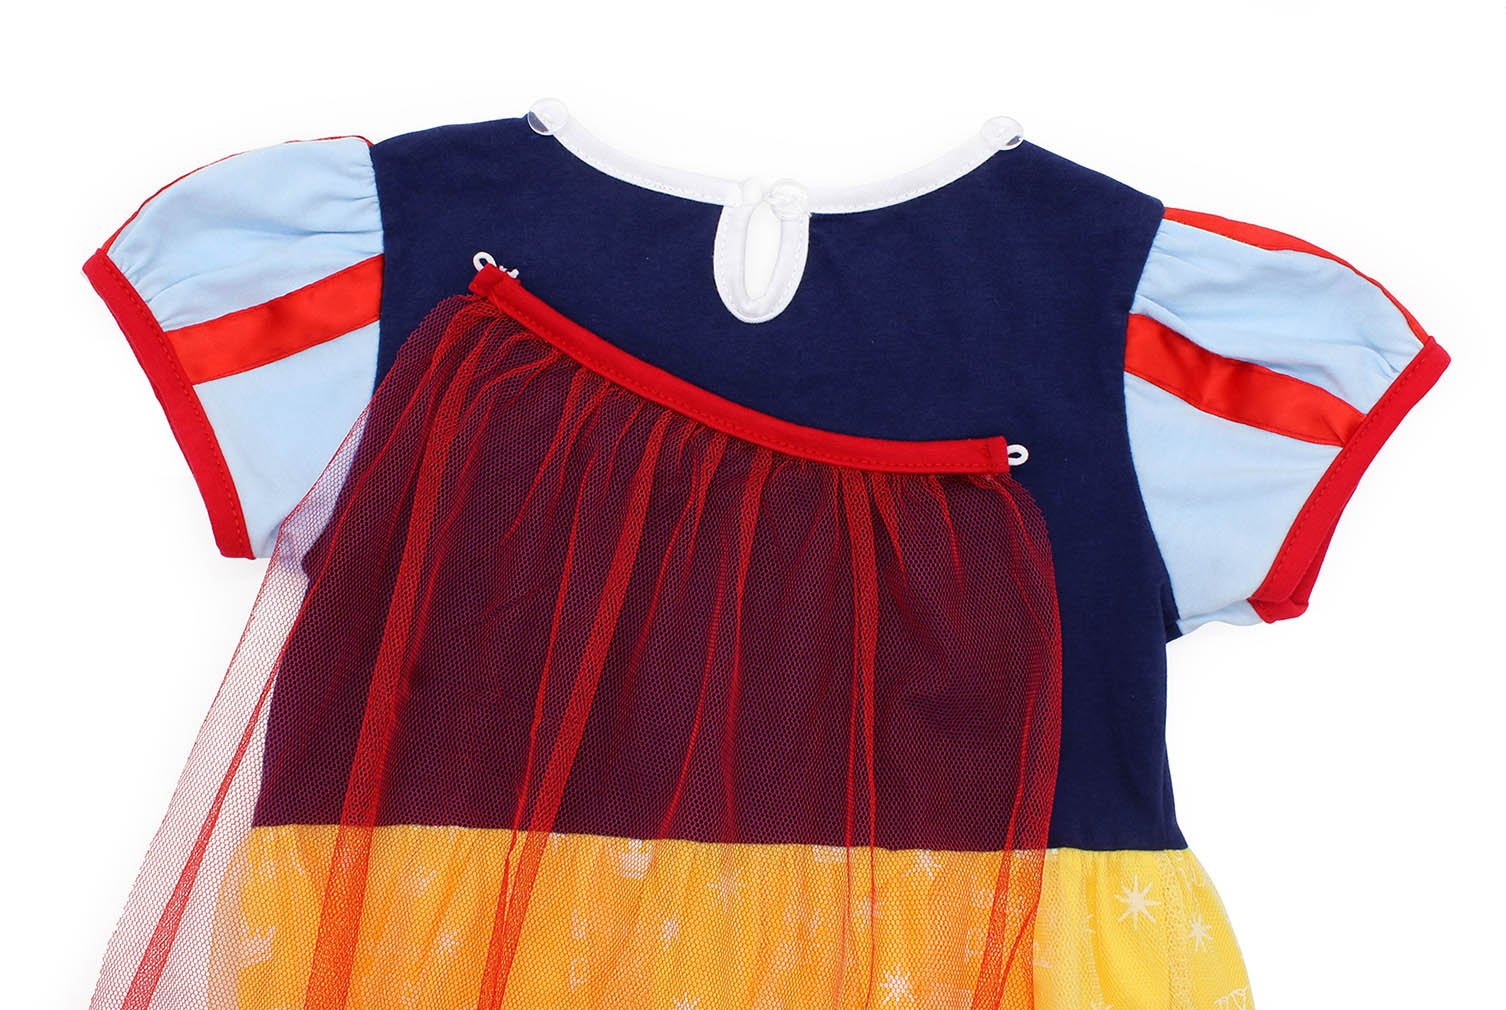 Jurebecia Princess Snow White Dress Toddler Girls Nightgowns Birthday Halloween Party Costumes with Cape Size 3T by Jurebecia (Image #6)